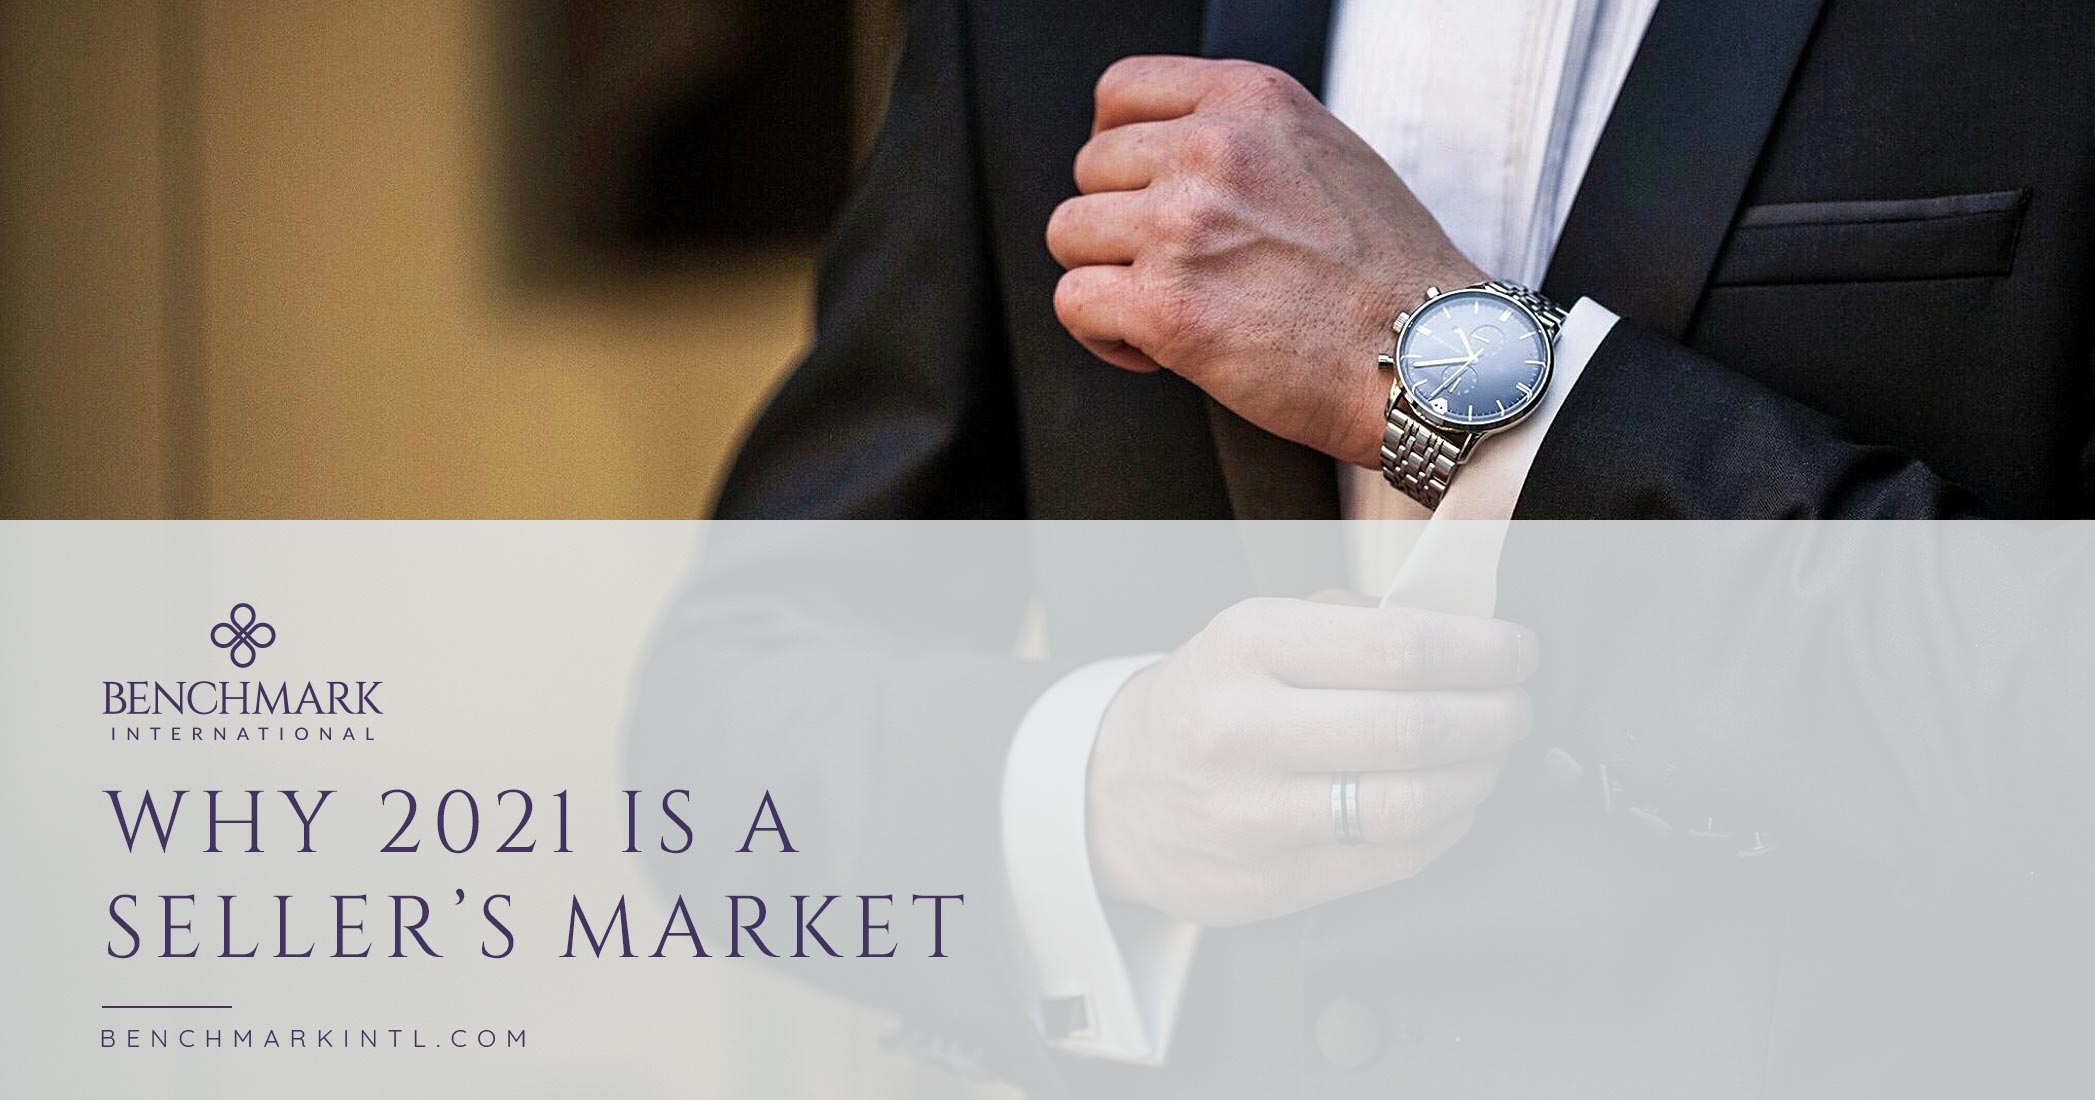 Why 2021 Is A Seller's Market